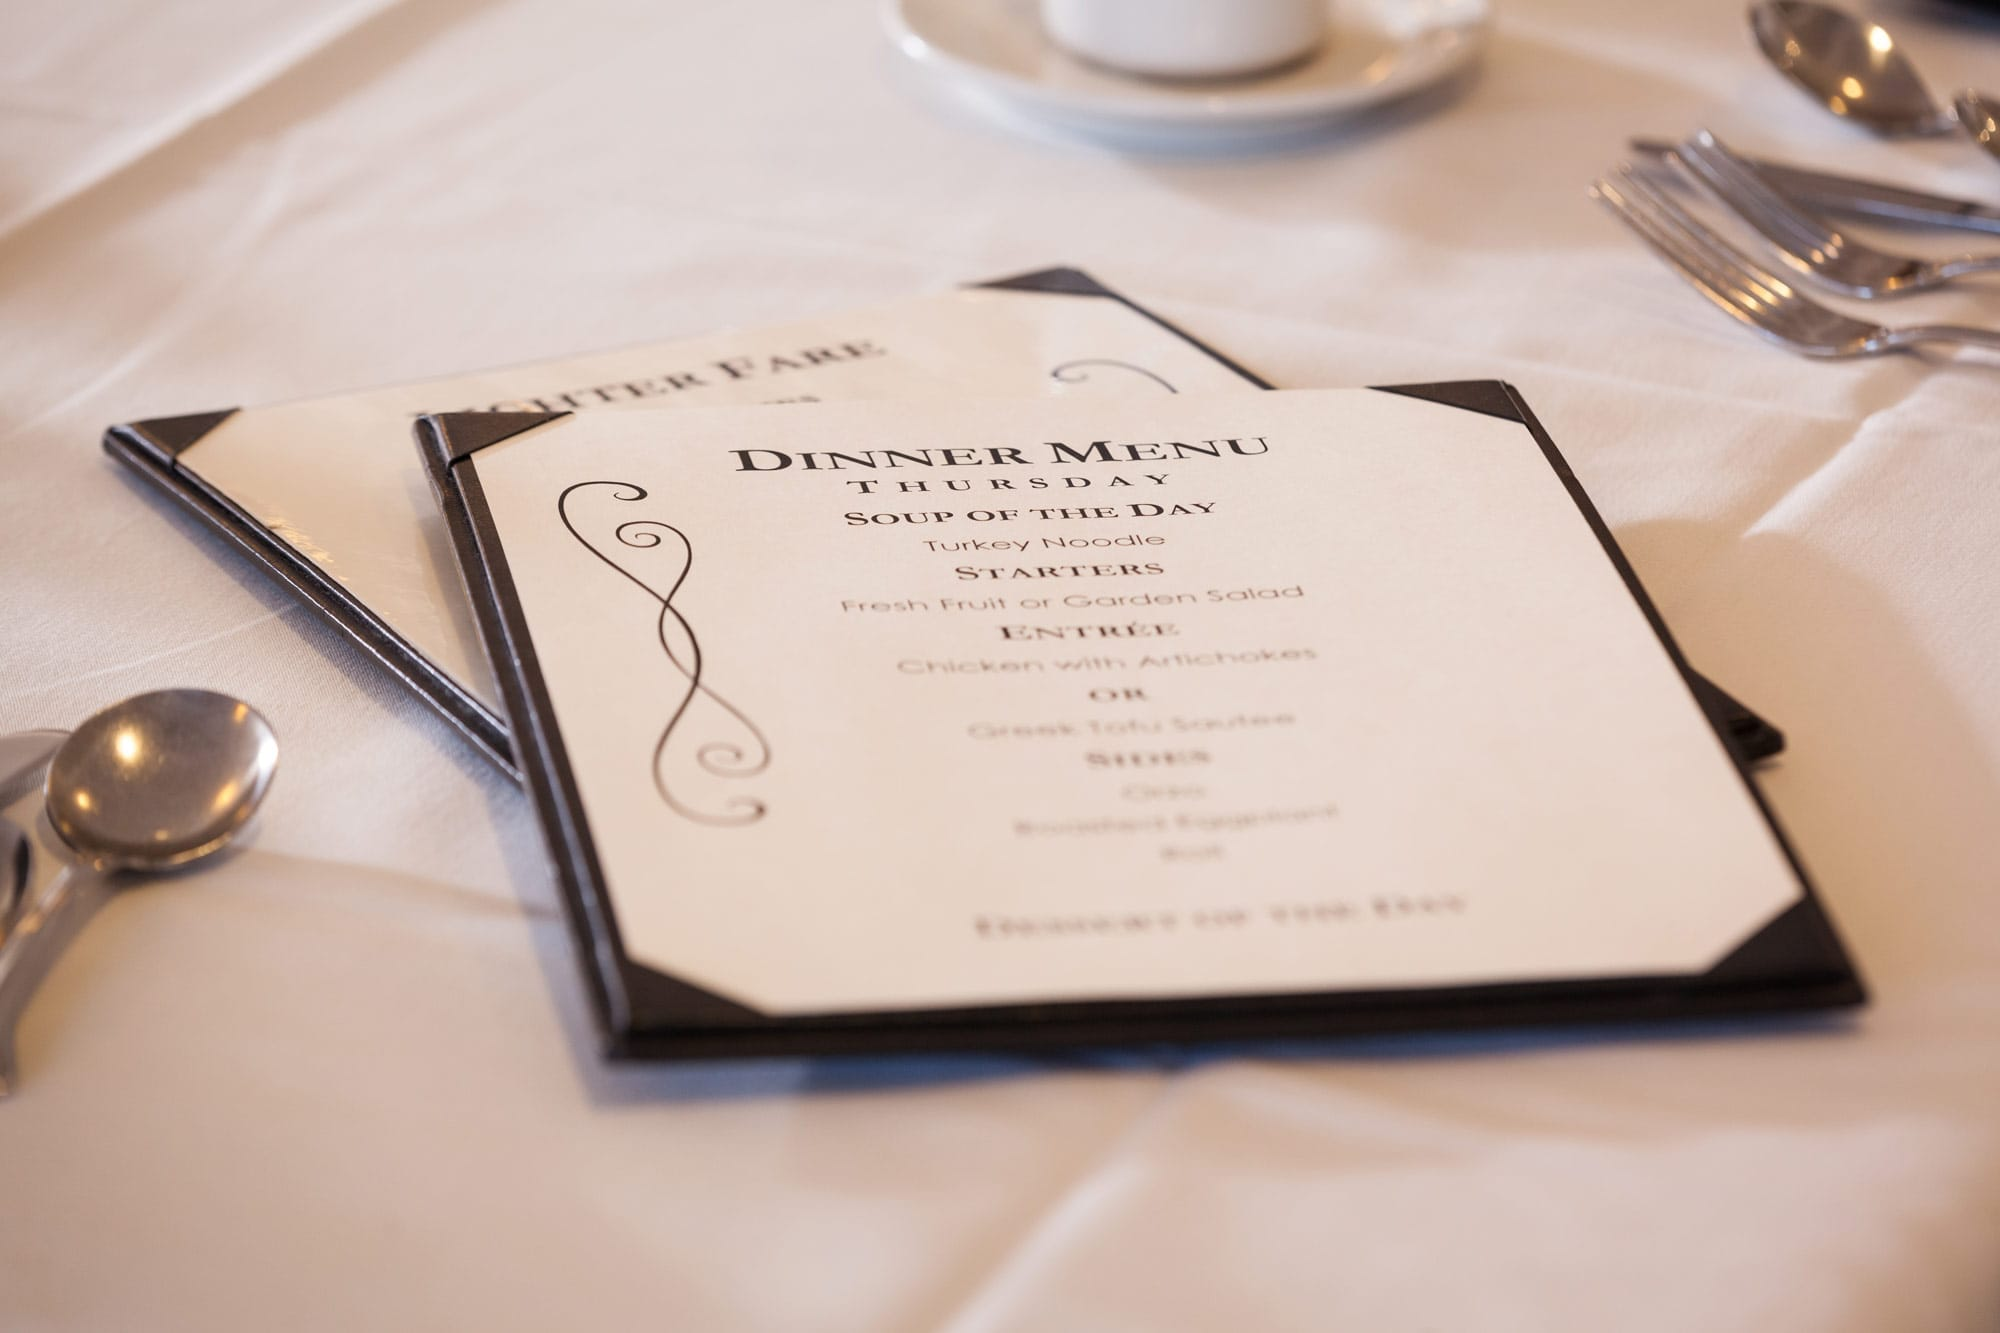 A look at one of the daily menus